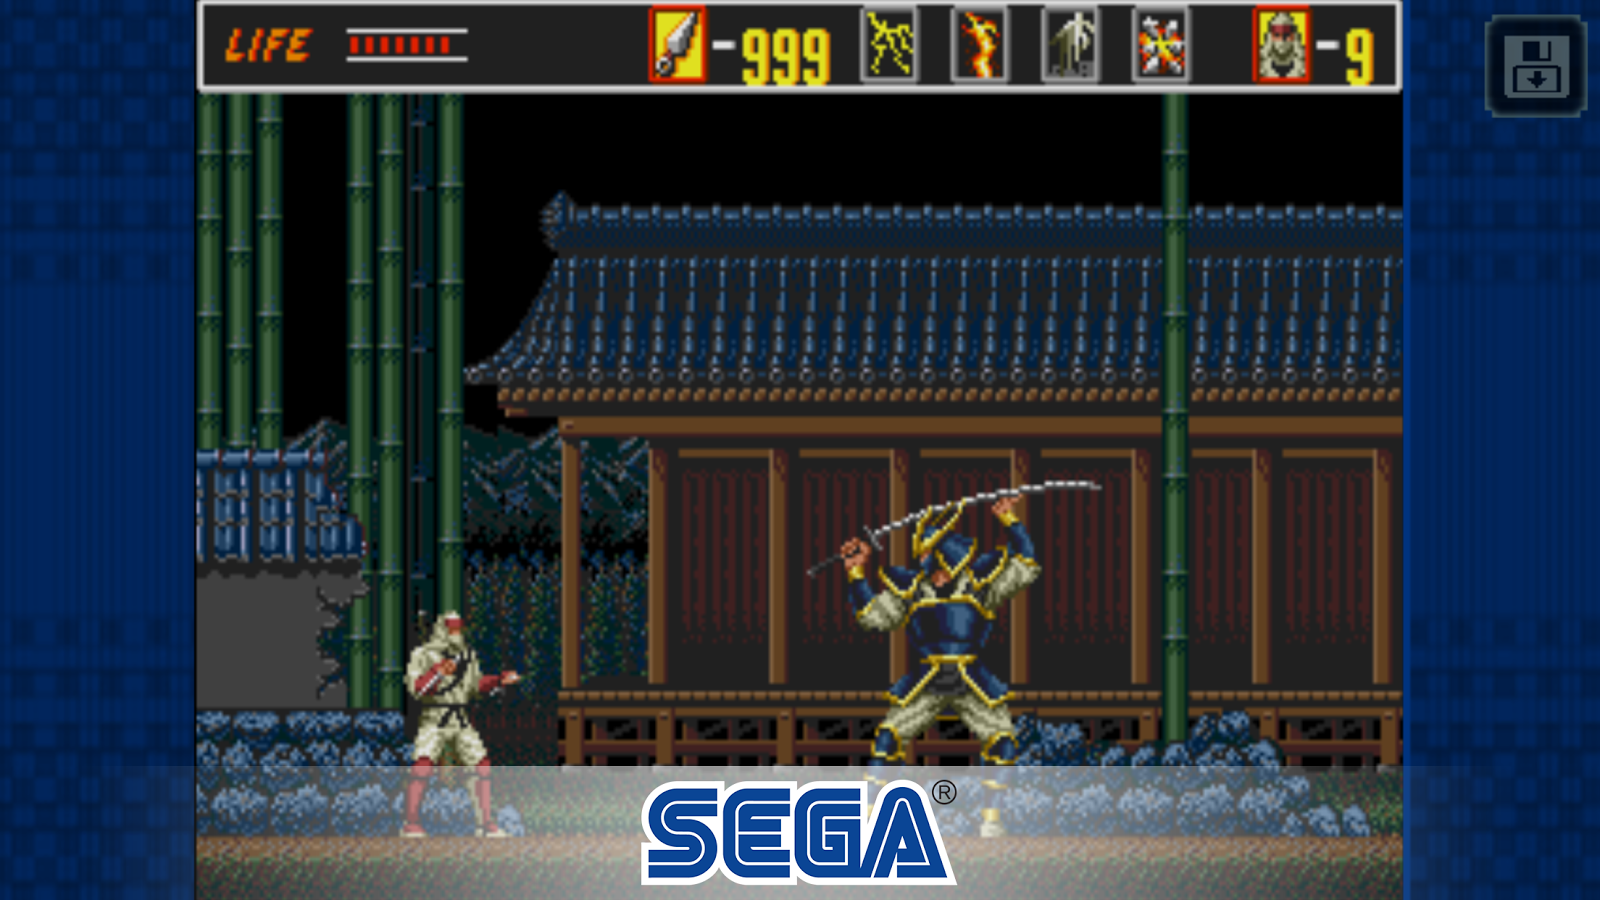 The Revenge of Shinobi Classic Screenshot 2